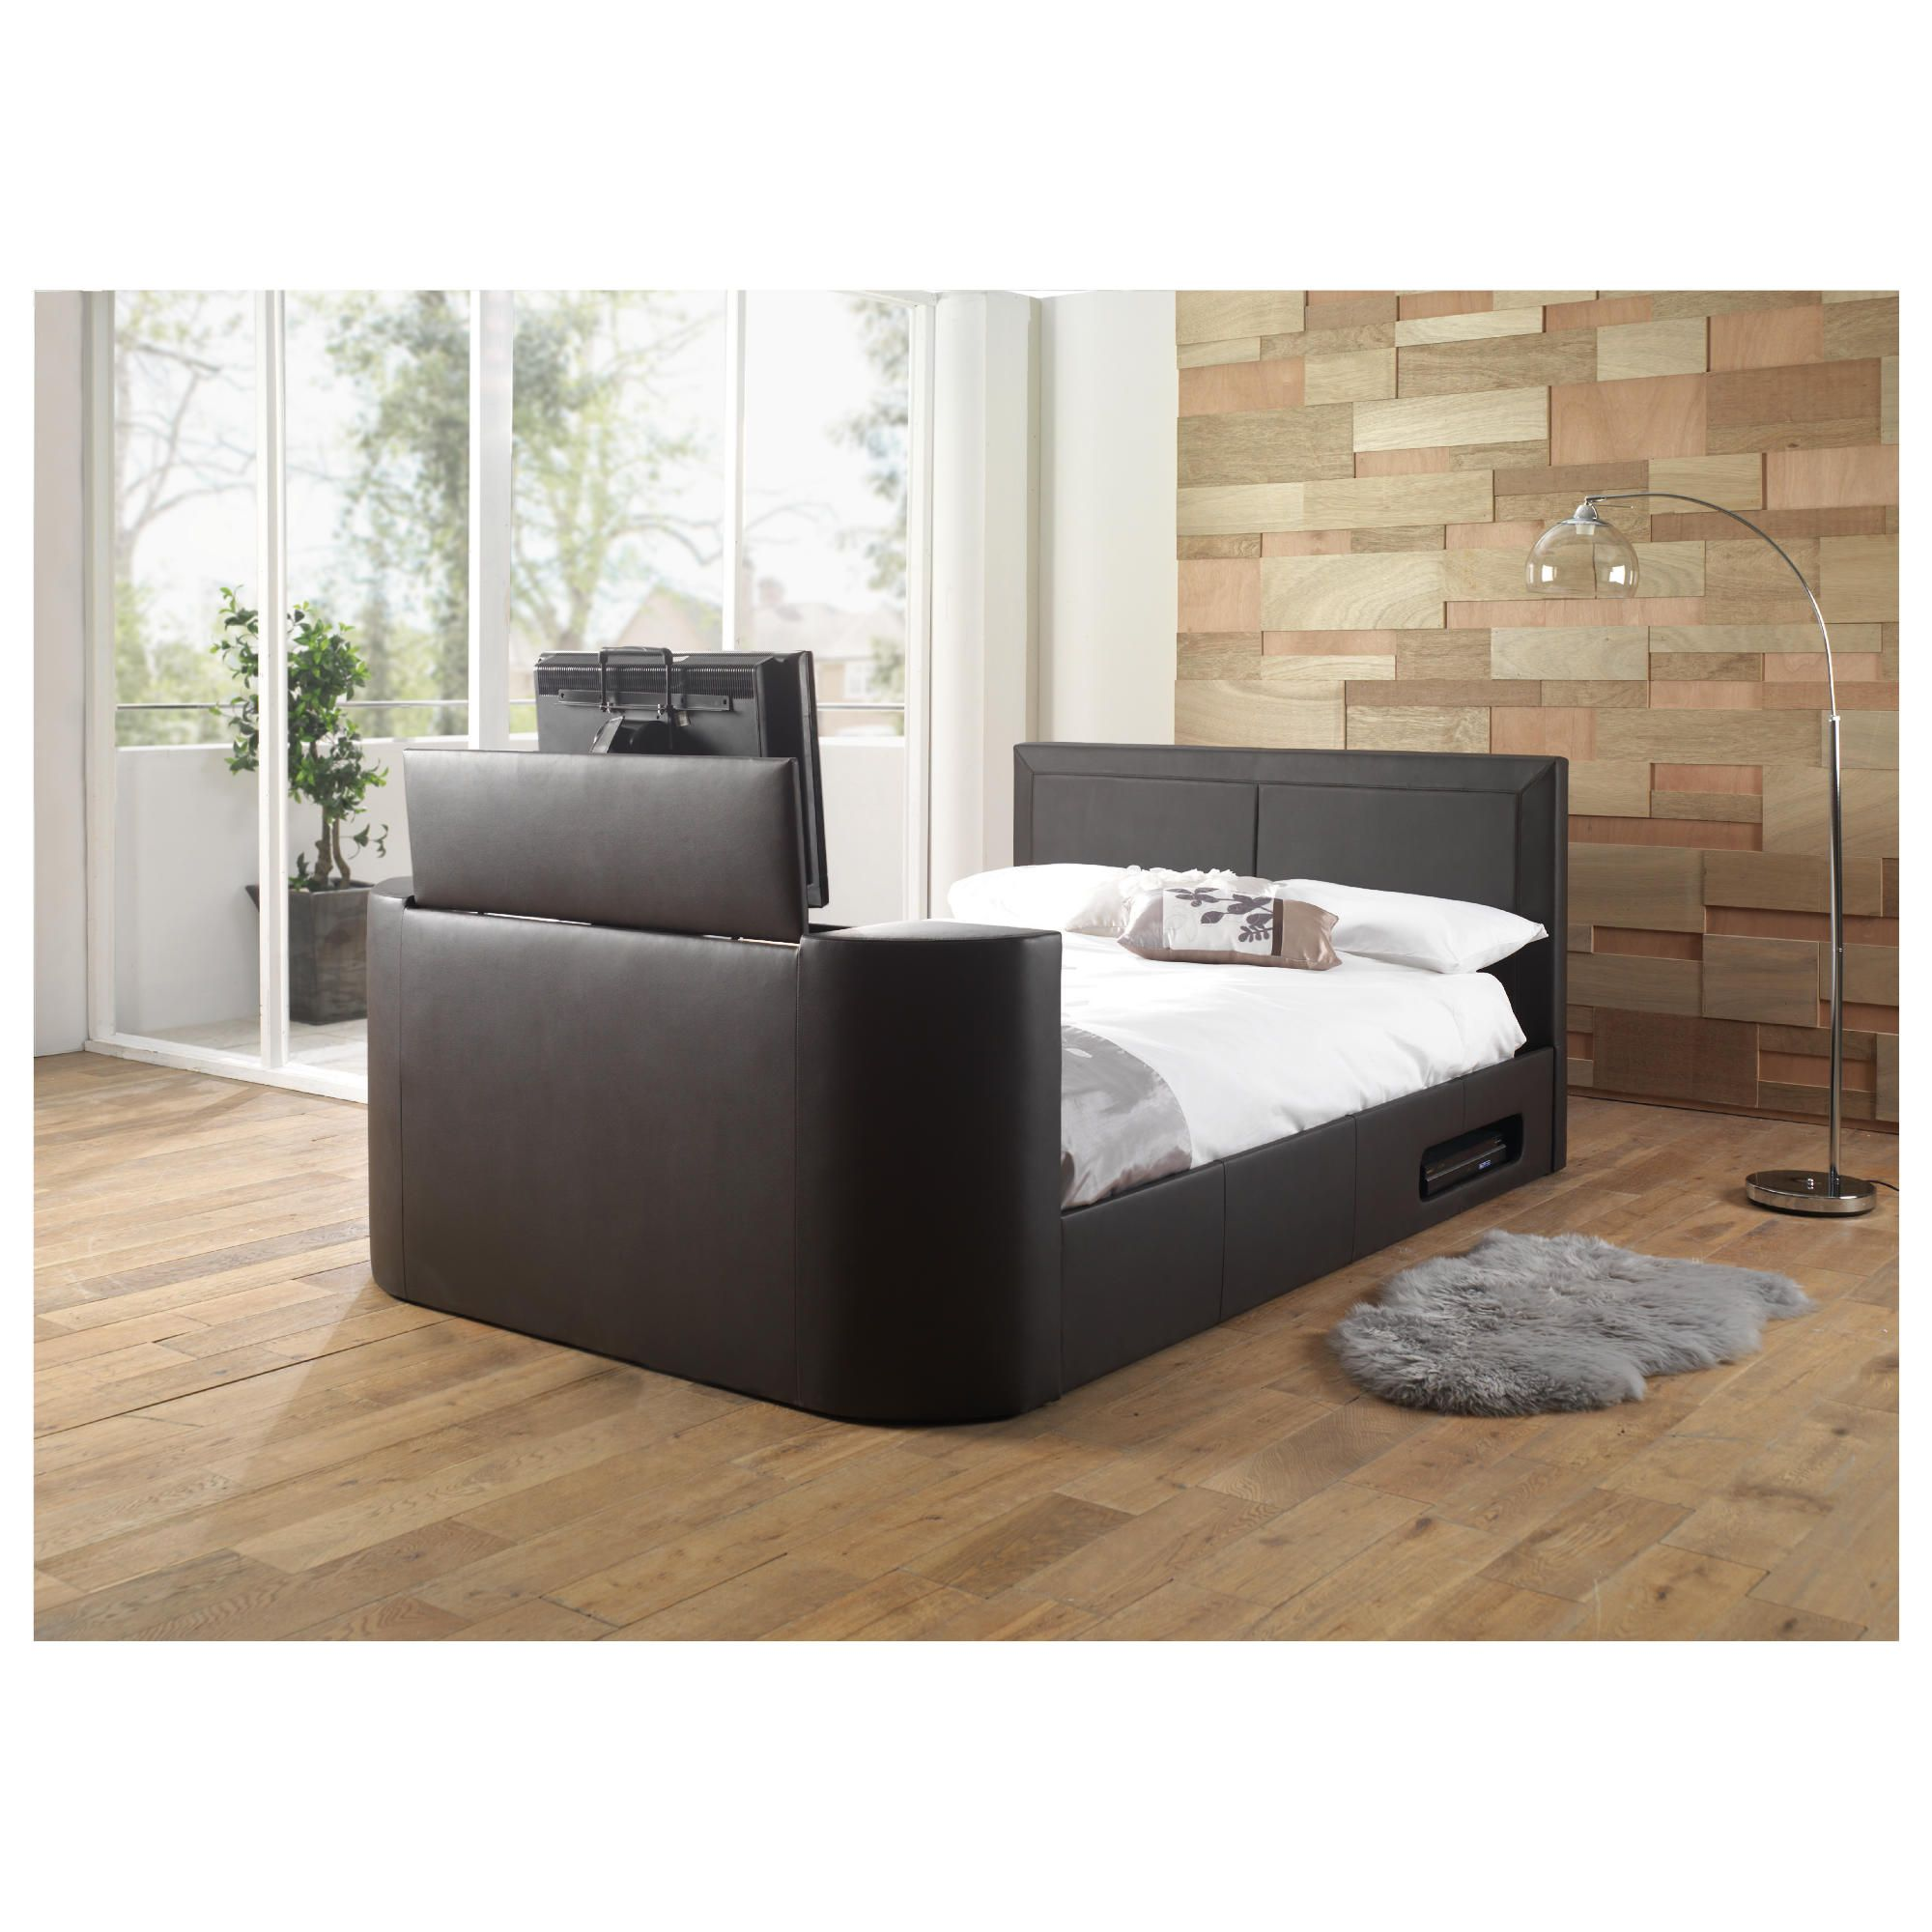 Charlotte Double Gas Lift Tv Bed Frame, Brown at Tesco Direct